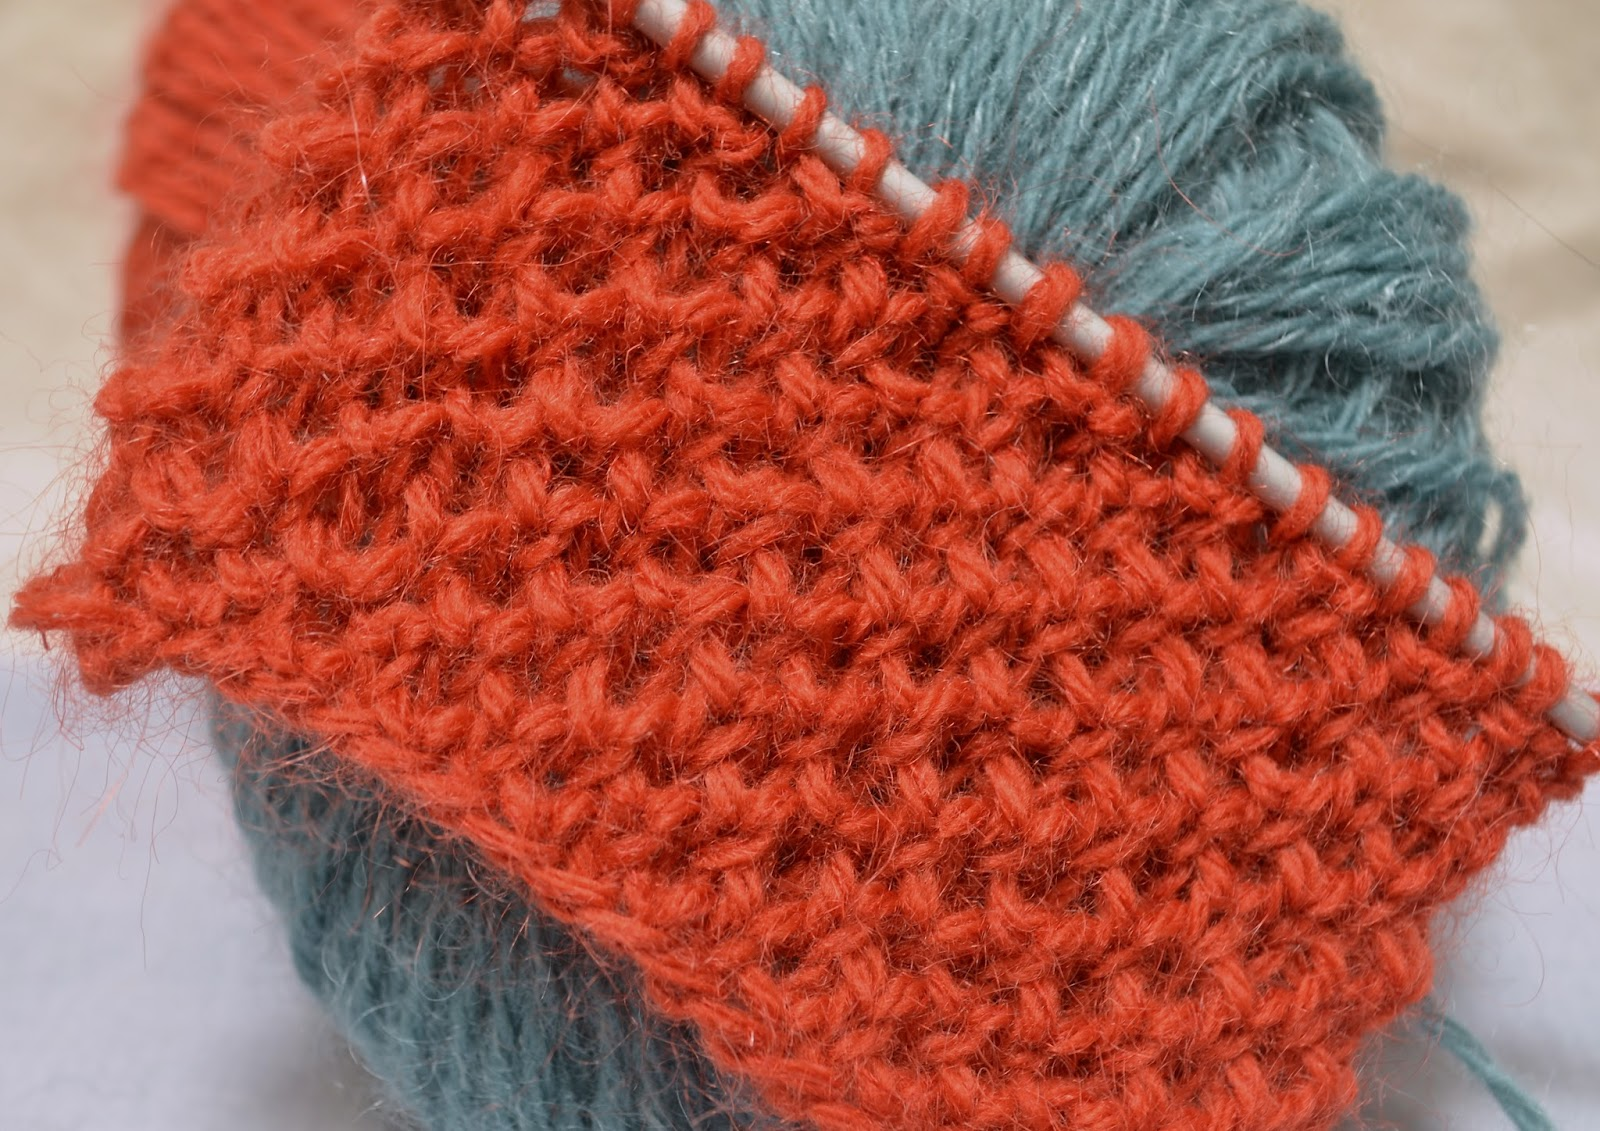 Knitting Novice: The Weekly Swatch: The Honeycomb Stitch